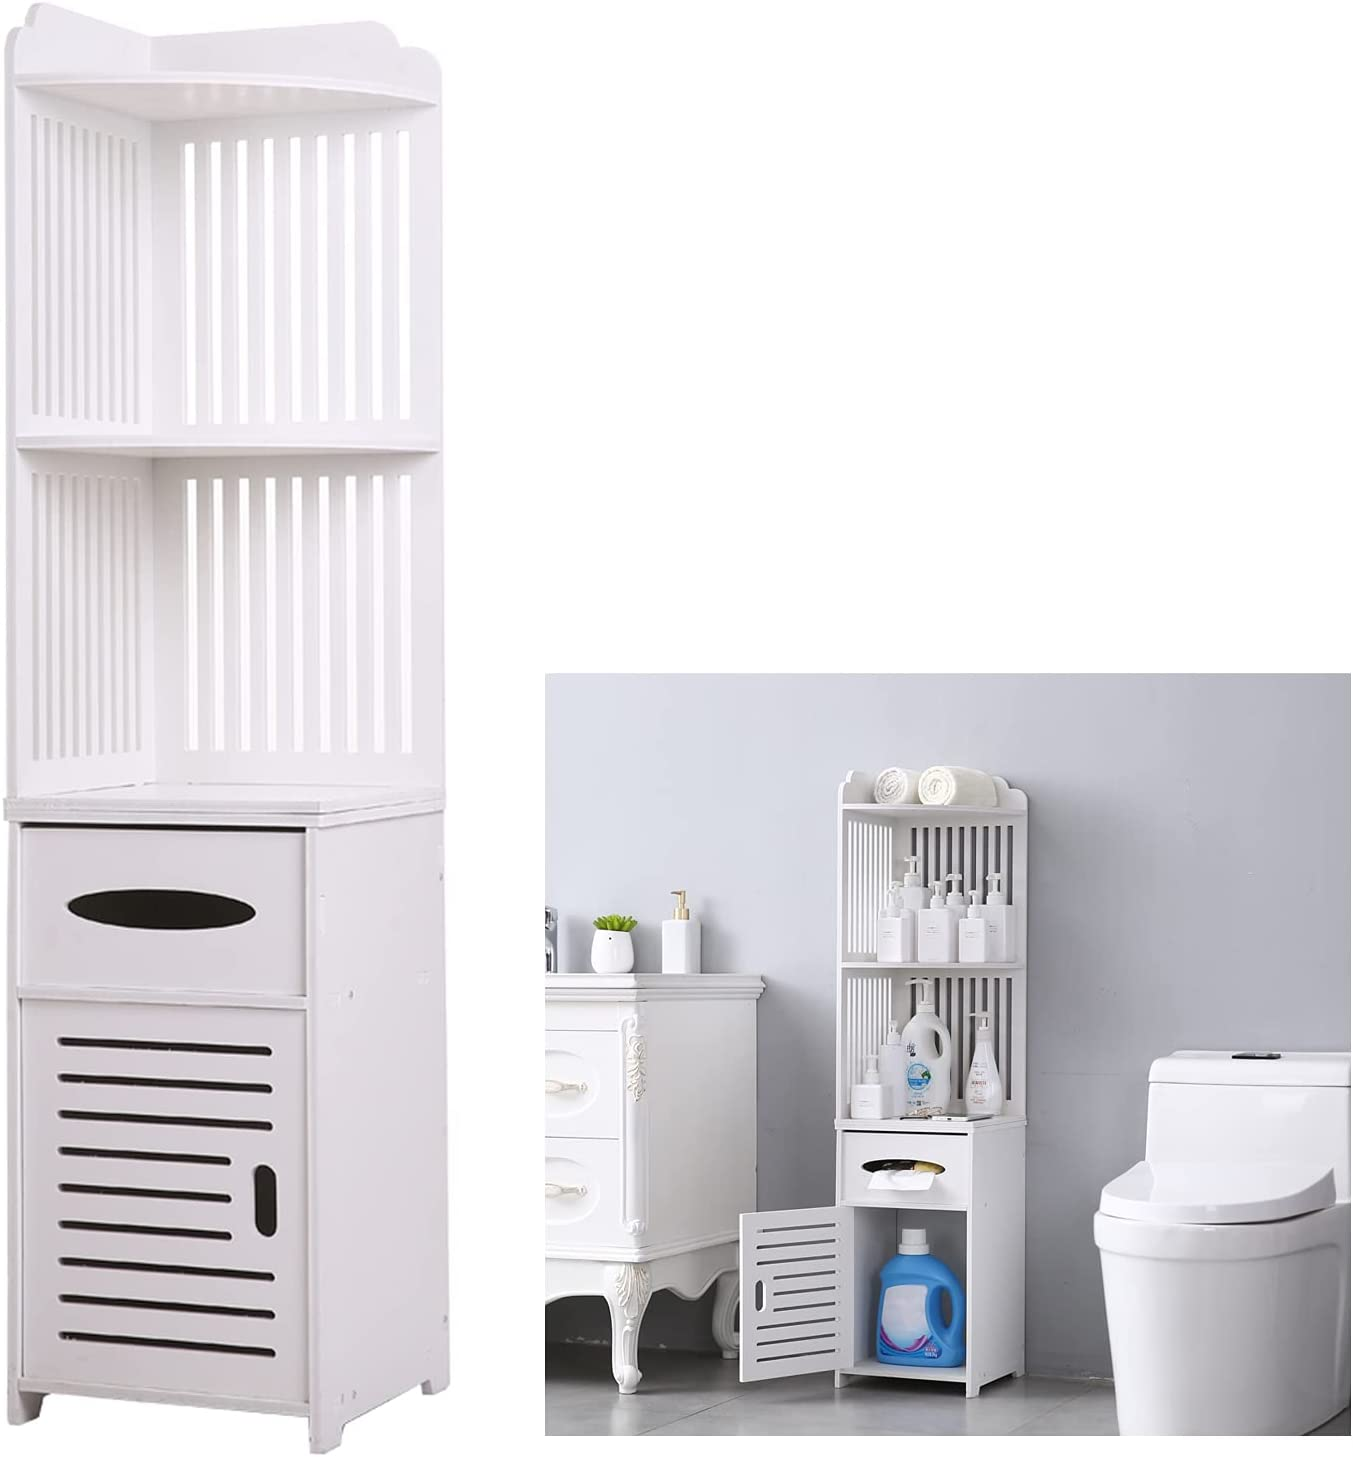 Small Bathroom Storage Toilet Paper Cabinet Corner Free shipping on posting reviews Some reservation Floor